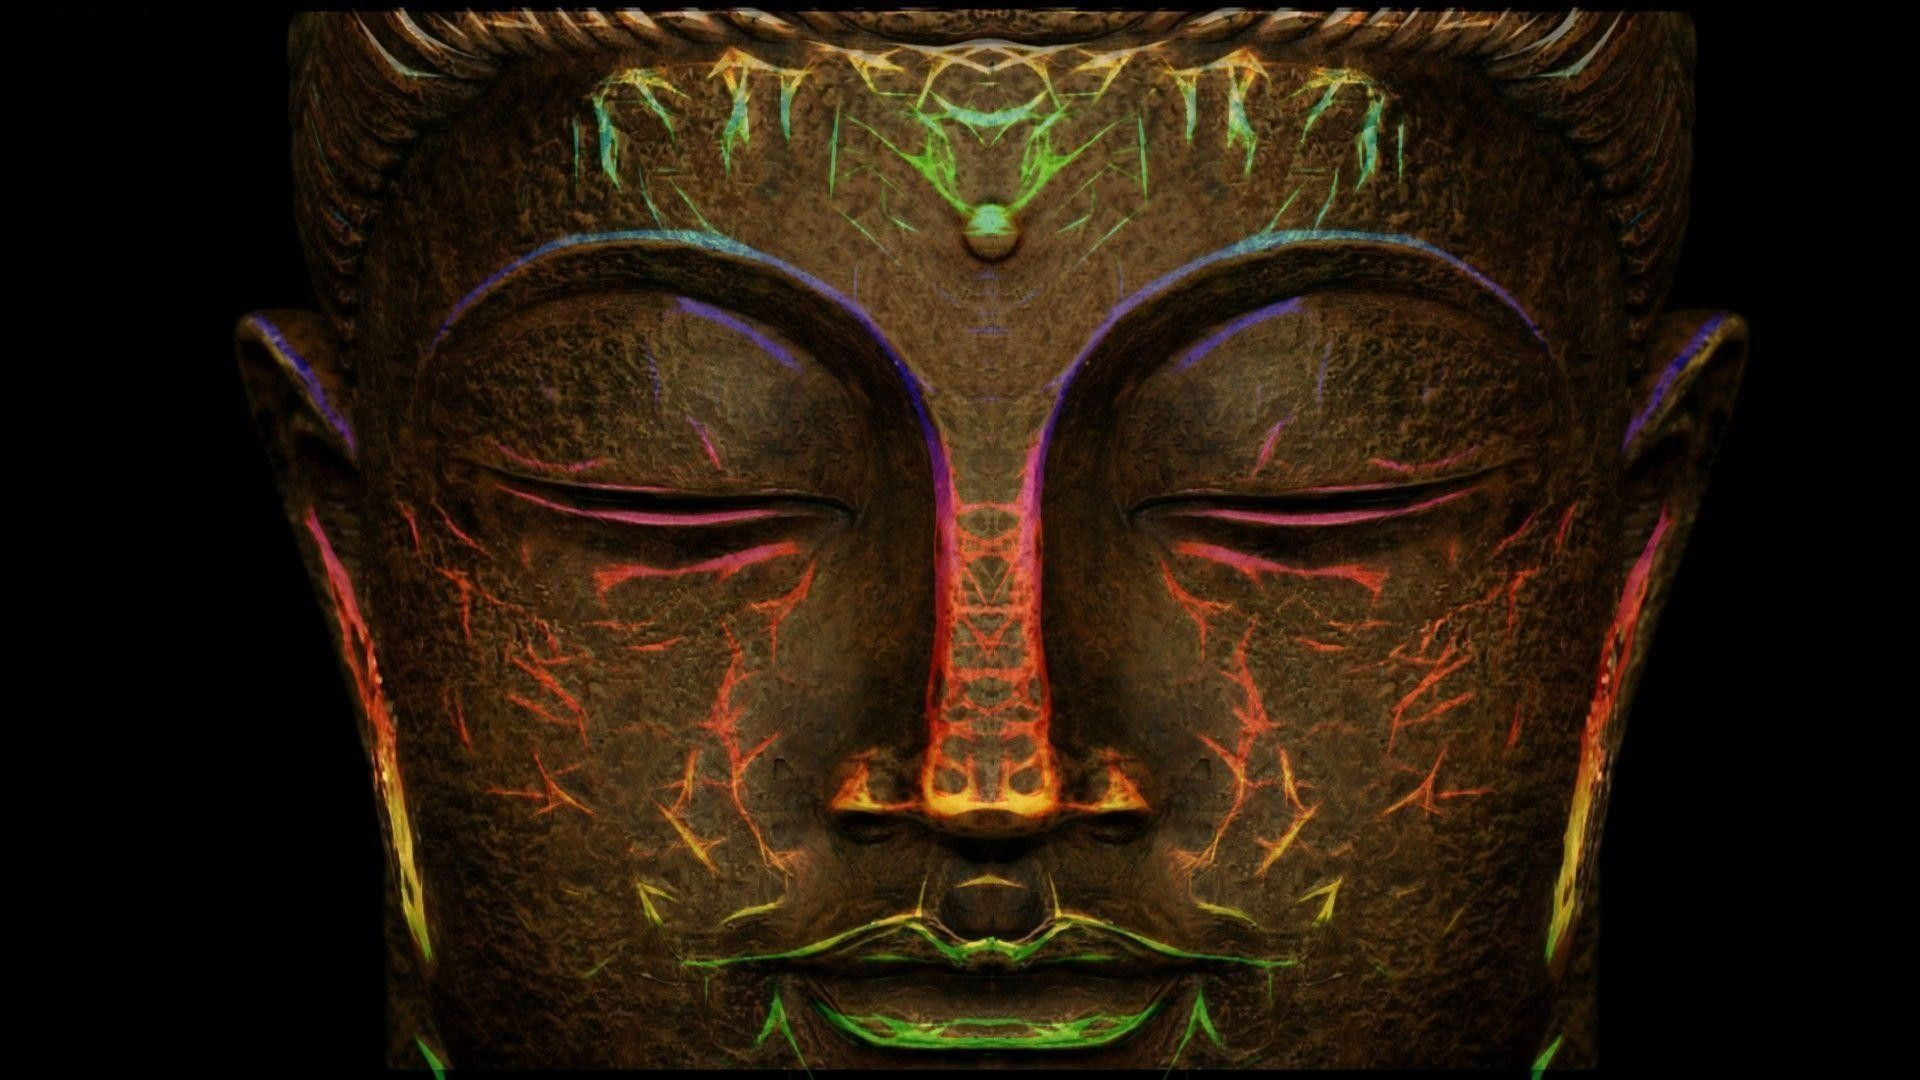 Buddha Hd Wallpaper For Iphone 5